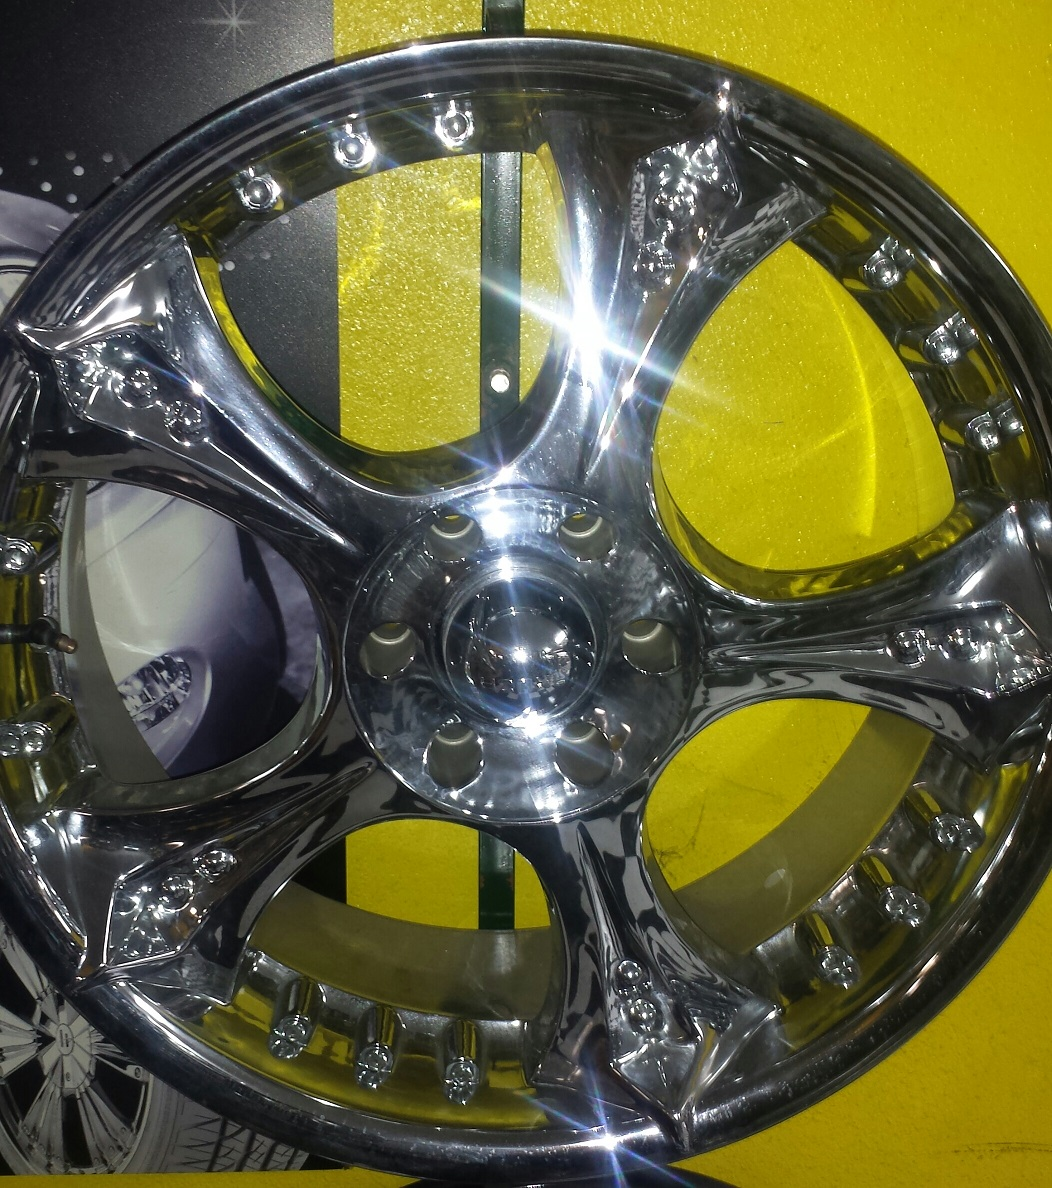 Special on wheels Brand name Akuza 619 22 22x95 Bolt pattern 6x139 TWO LOCATIONS Business